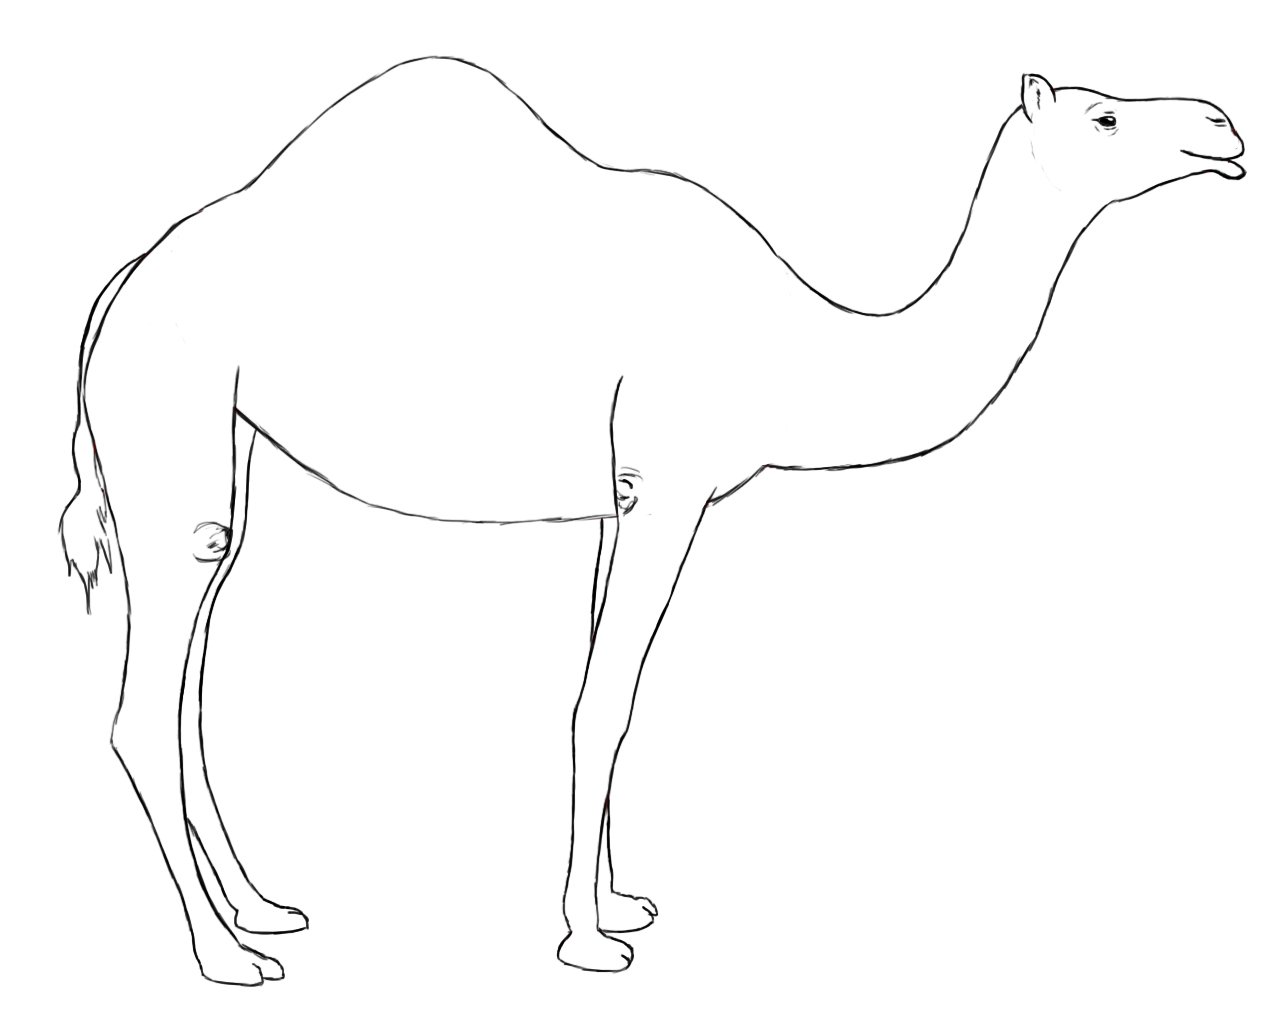 Camel clipart simple. Easy drawing at getdrawings